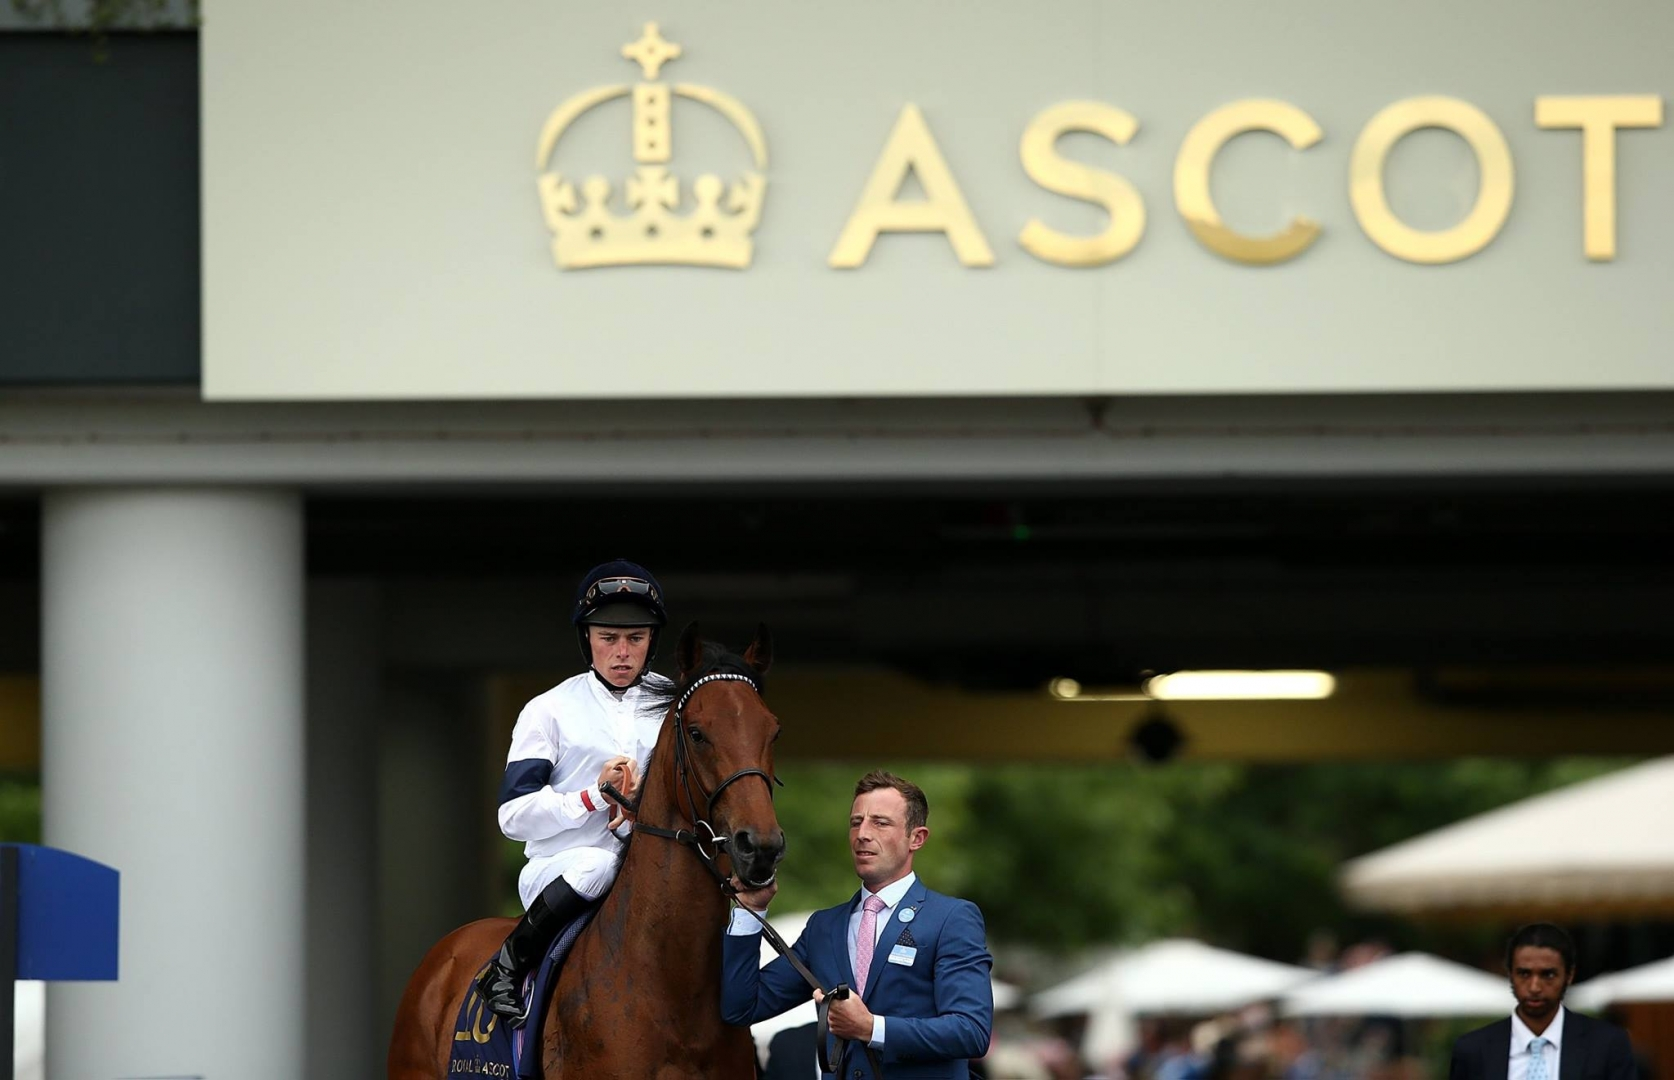 Kalapkavalkád a Royal Ascot-on